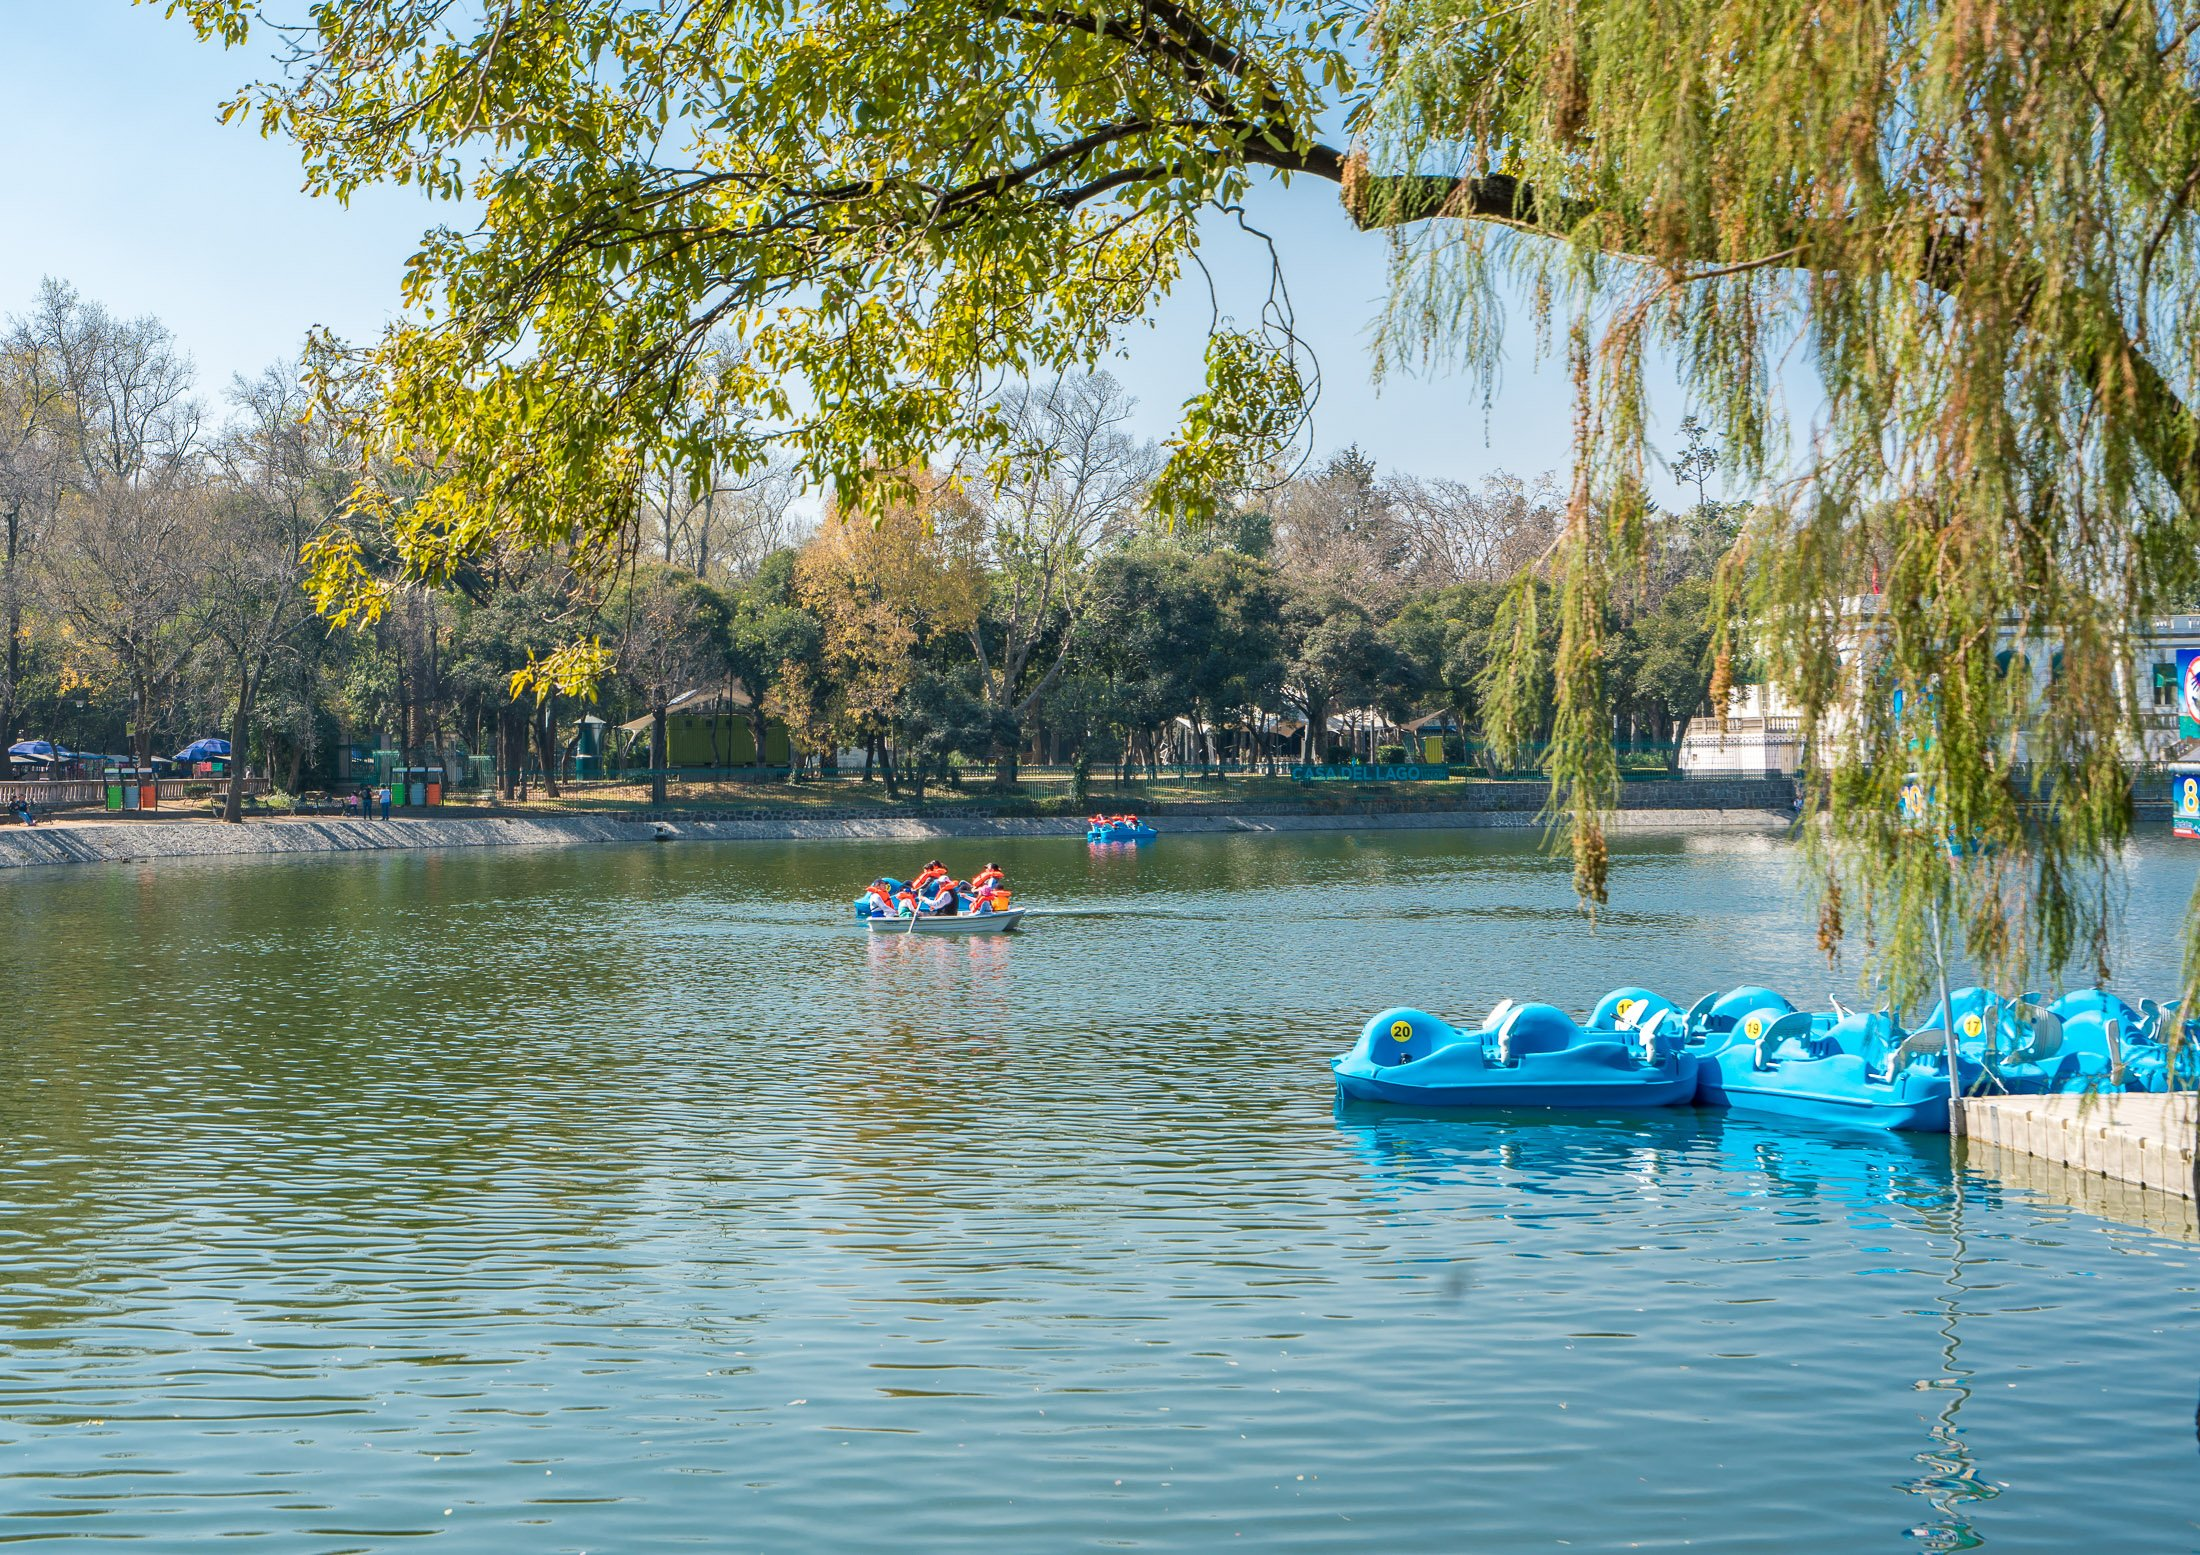 Ride Paddle Boats on Chapultepec Lake in Mexico City